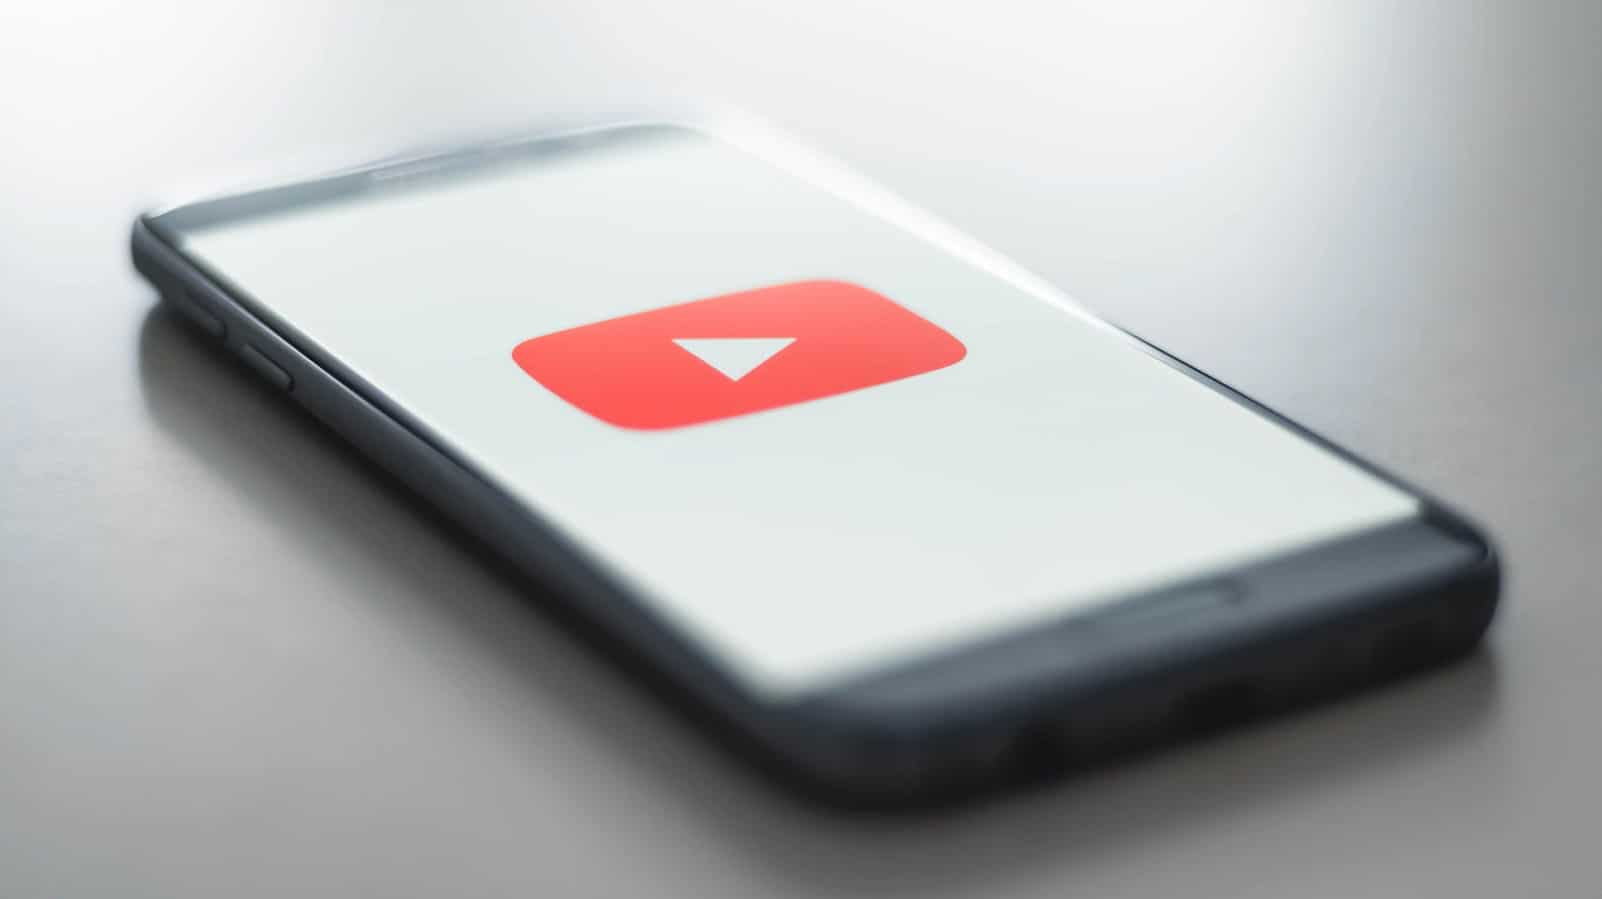 youtube logo on a phone sitting on a desk